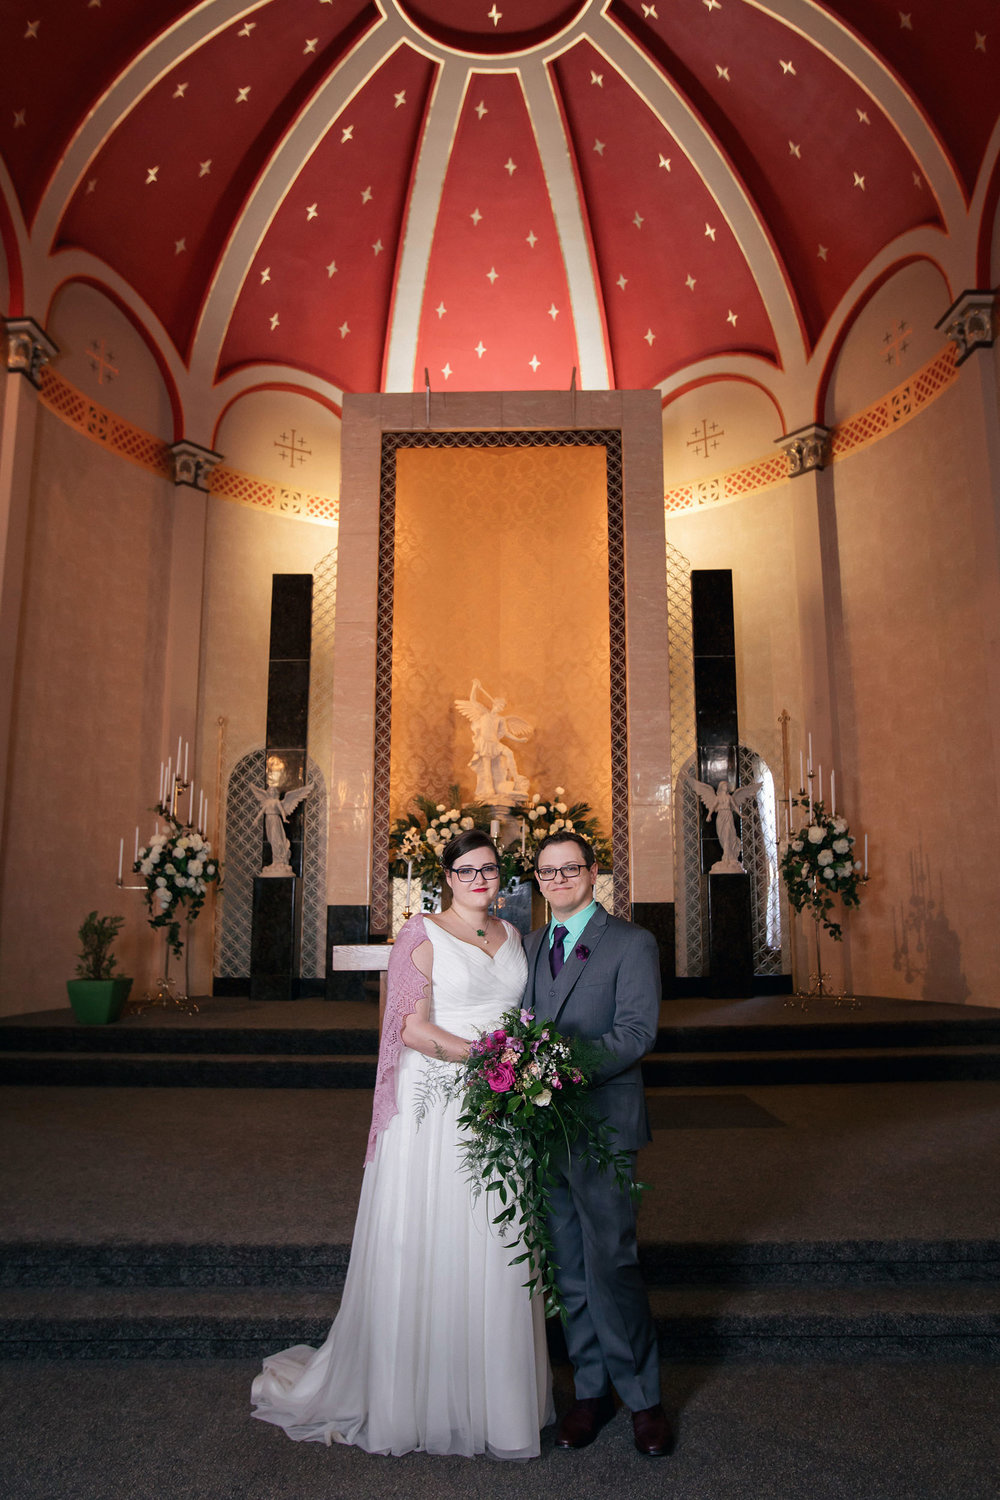 Angela&Jason-Wedding149.jpg